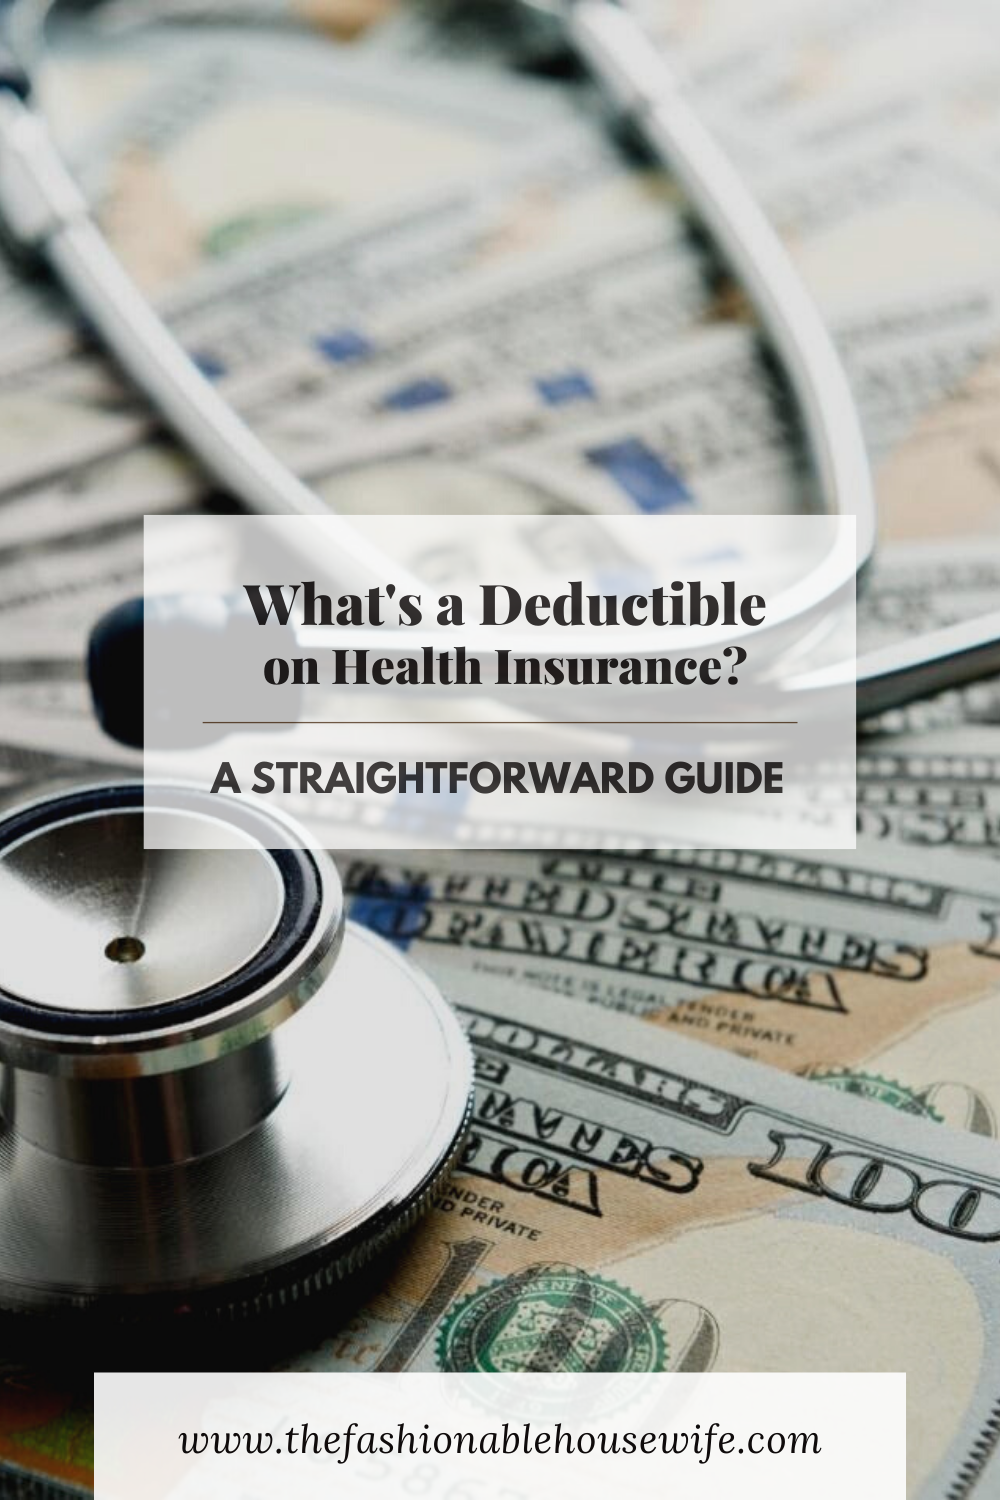 What's a Deductible on Health Insurance? • The Fashionable ...